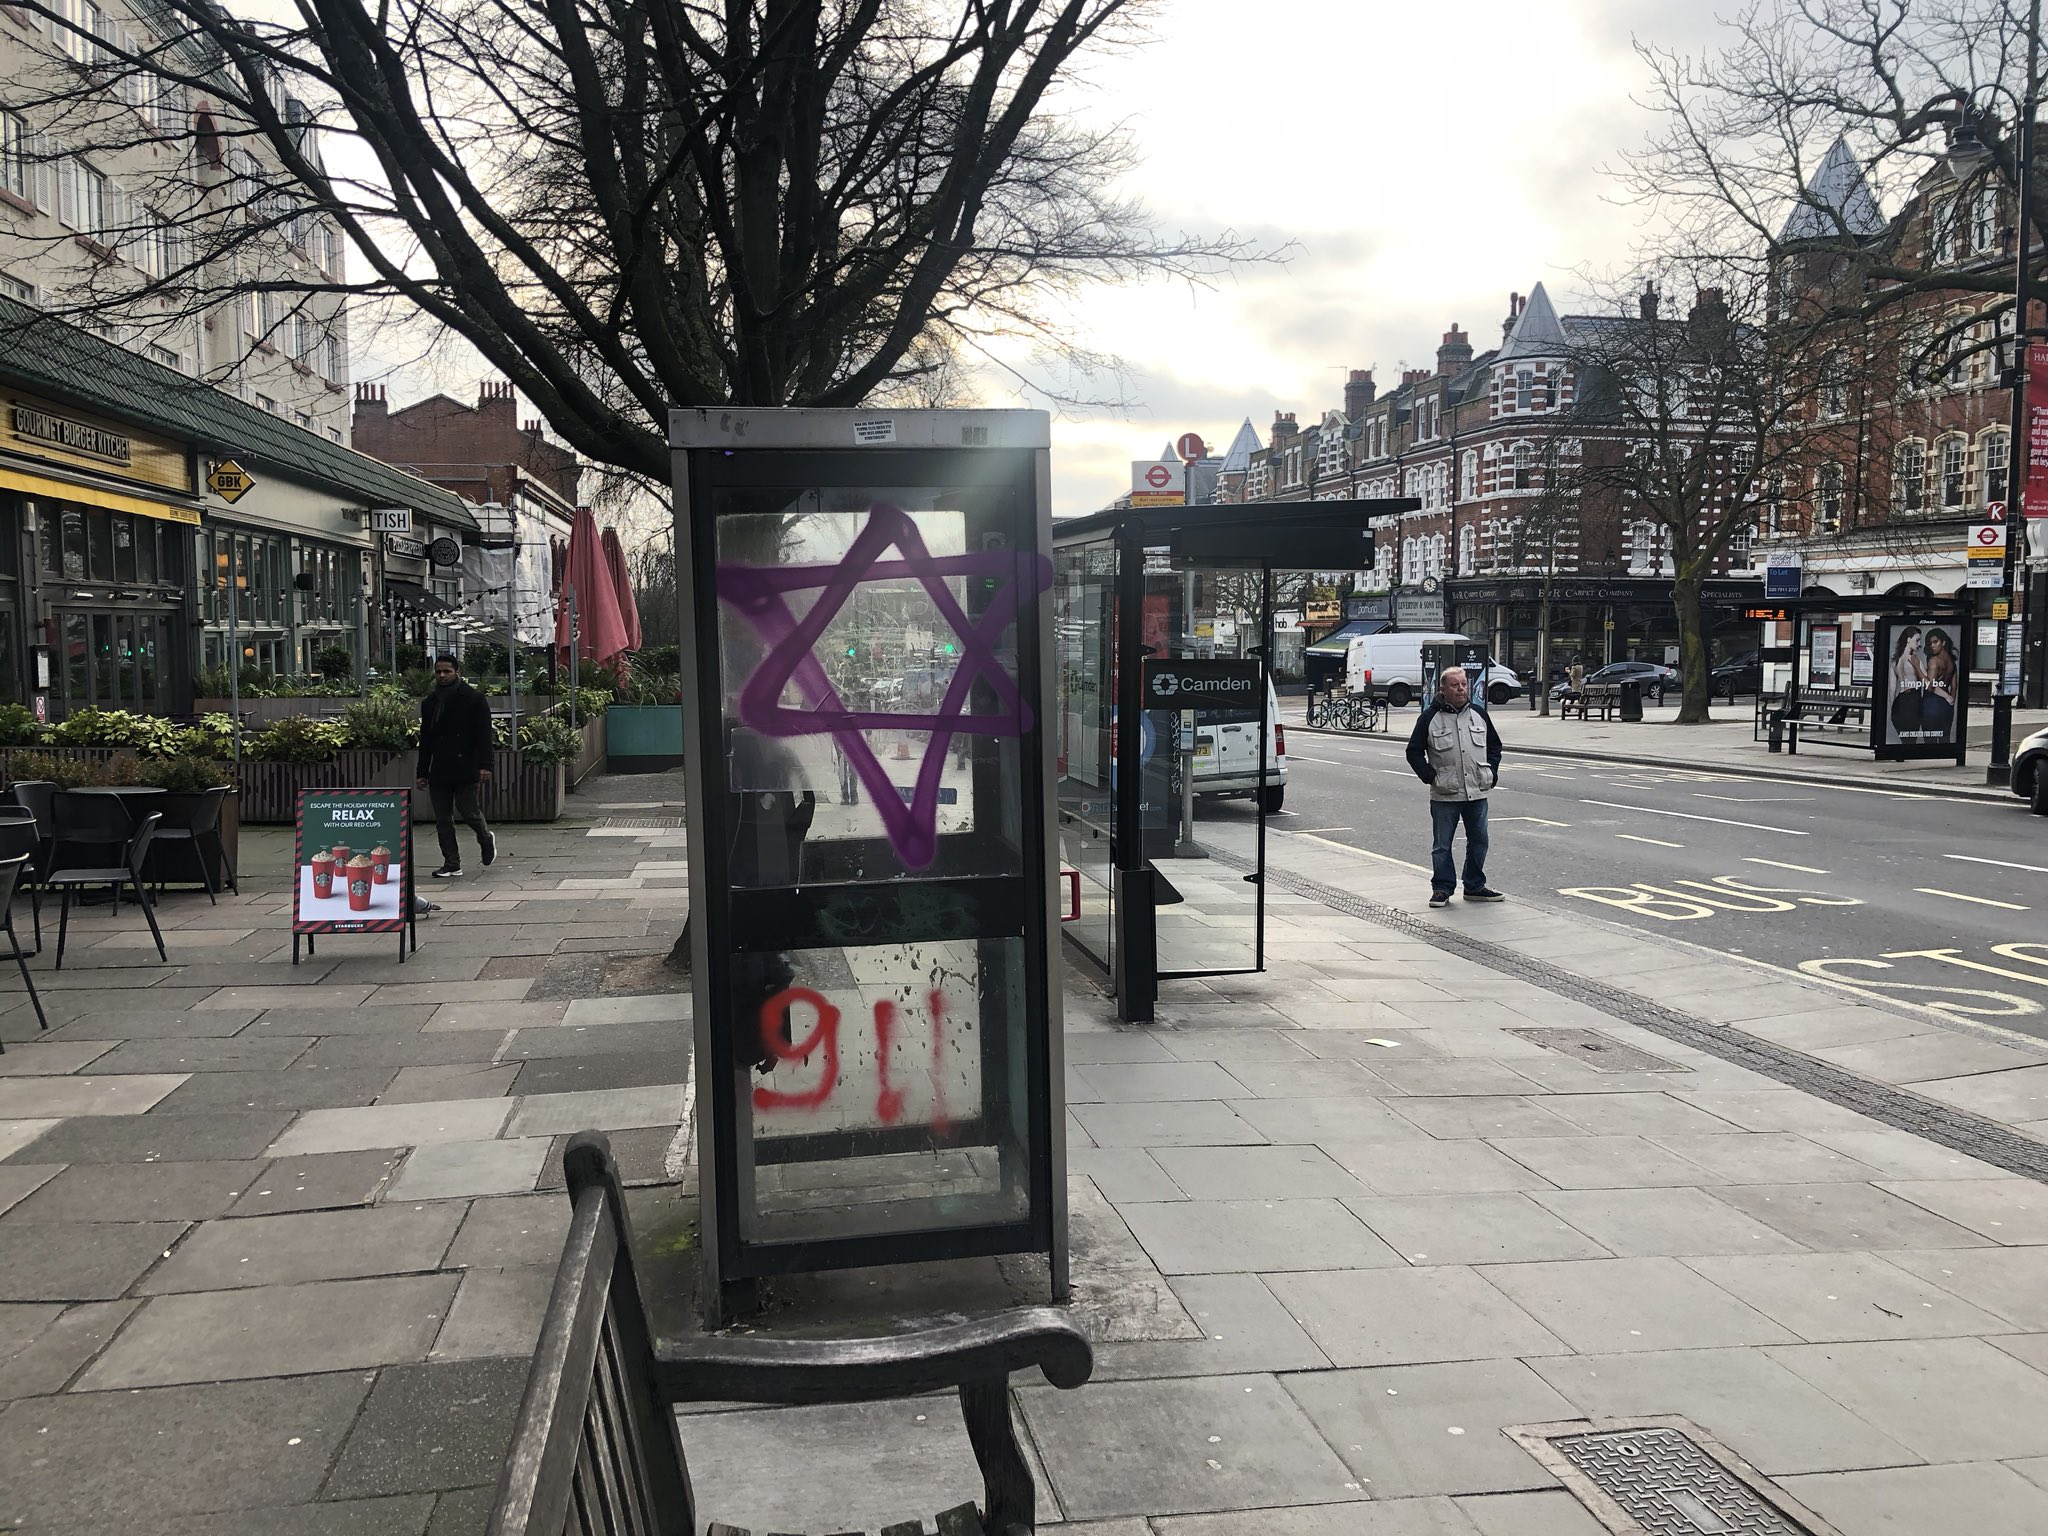 Where are you? With Artists Against Antisemitism